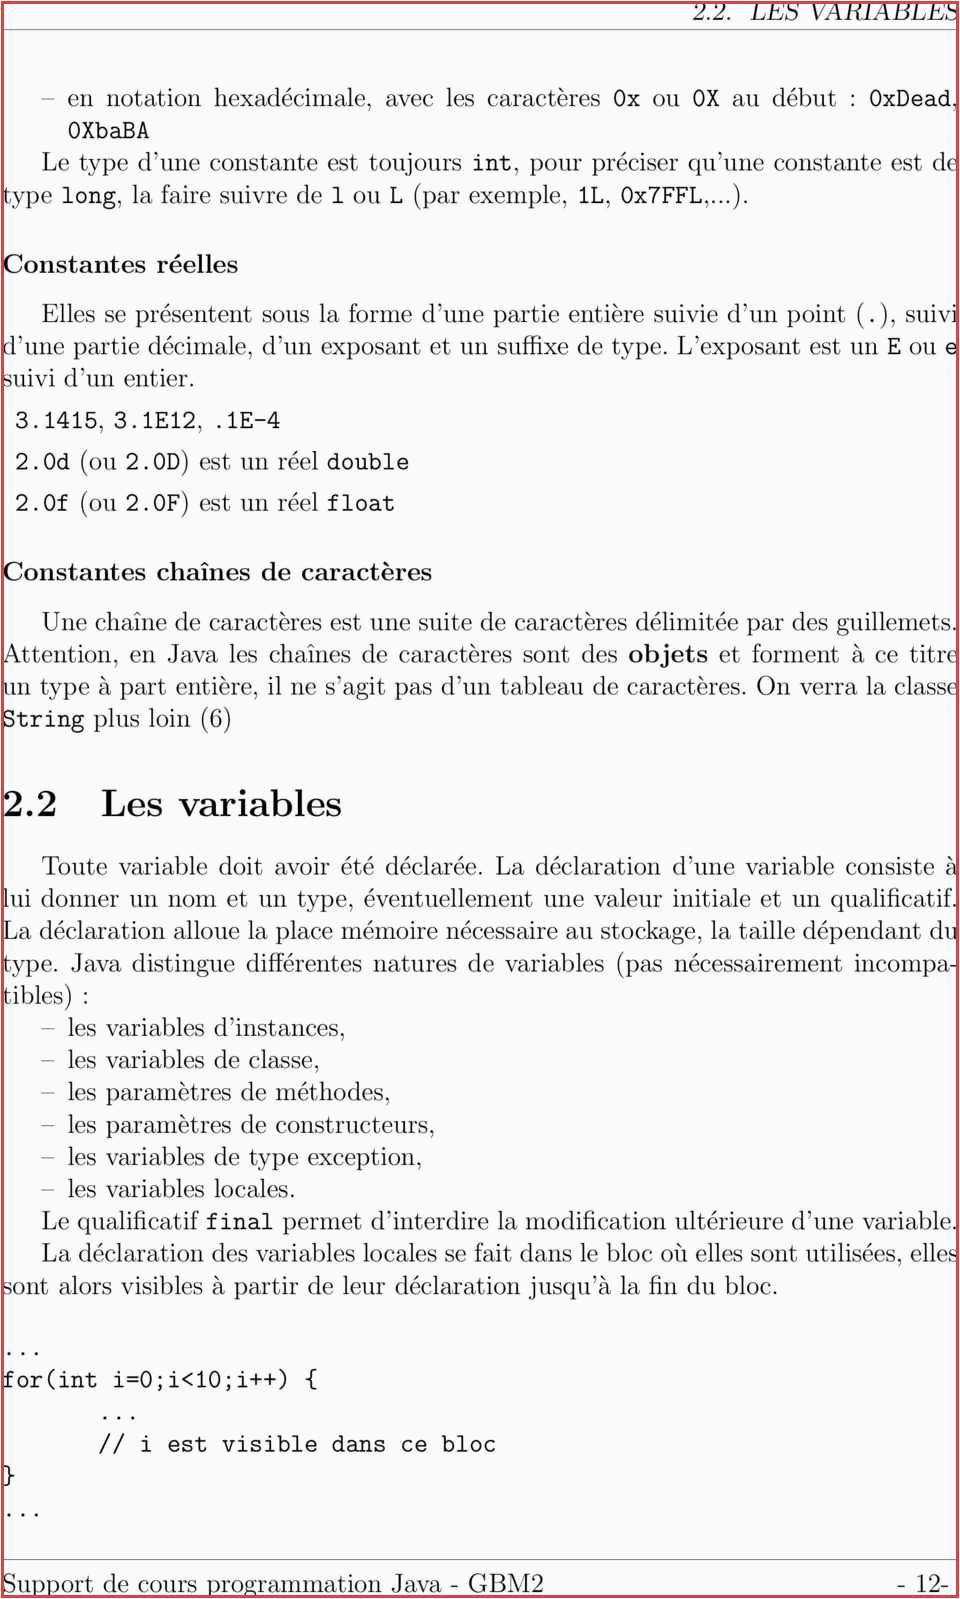 exemple lettre de motivation bts muc exemple cv et lettre de motivation exemple cv logistique